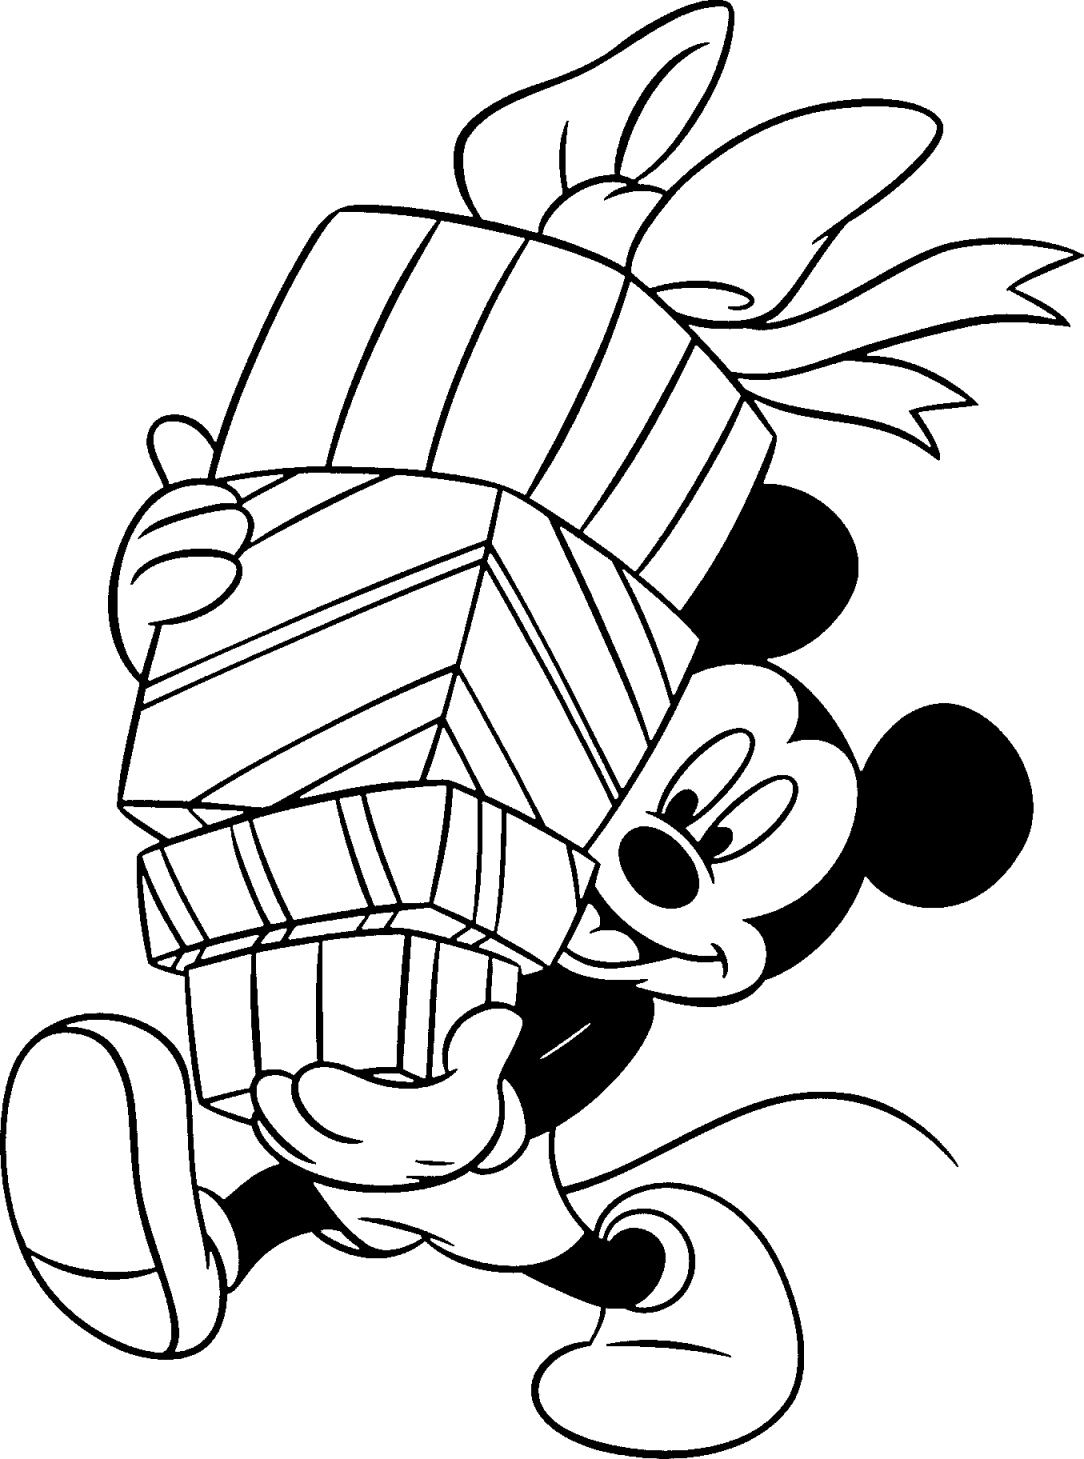 may 2010 disney coloring pages